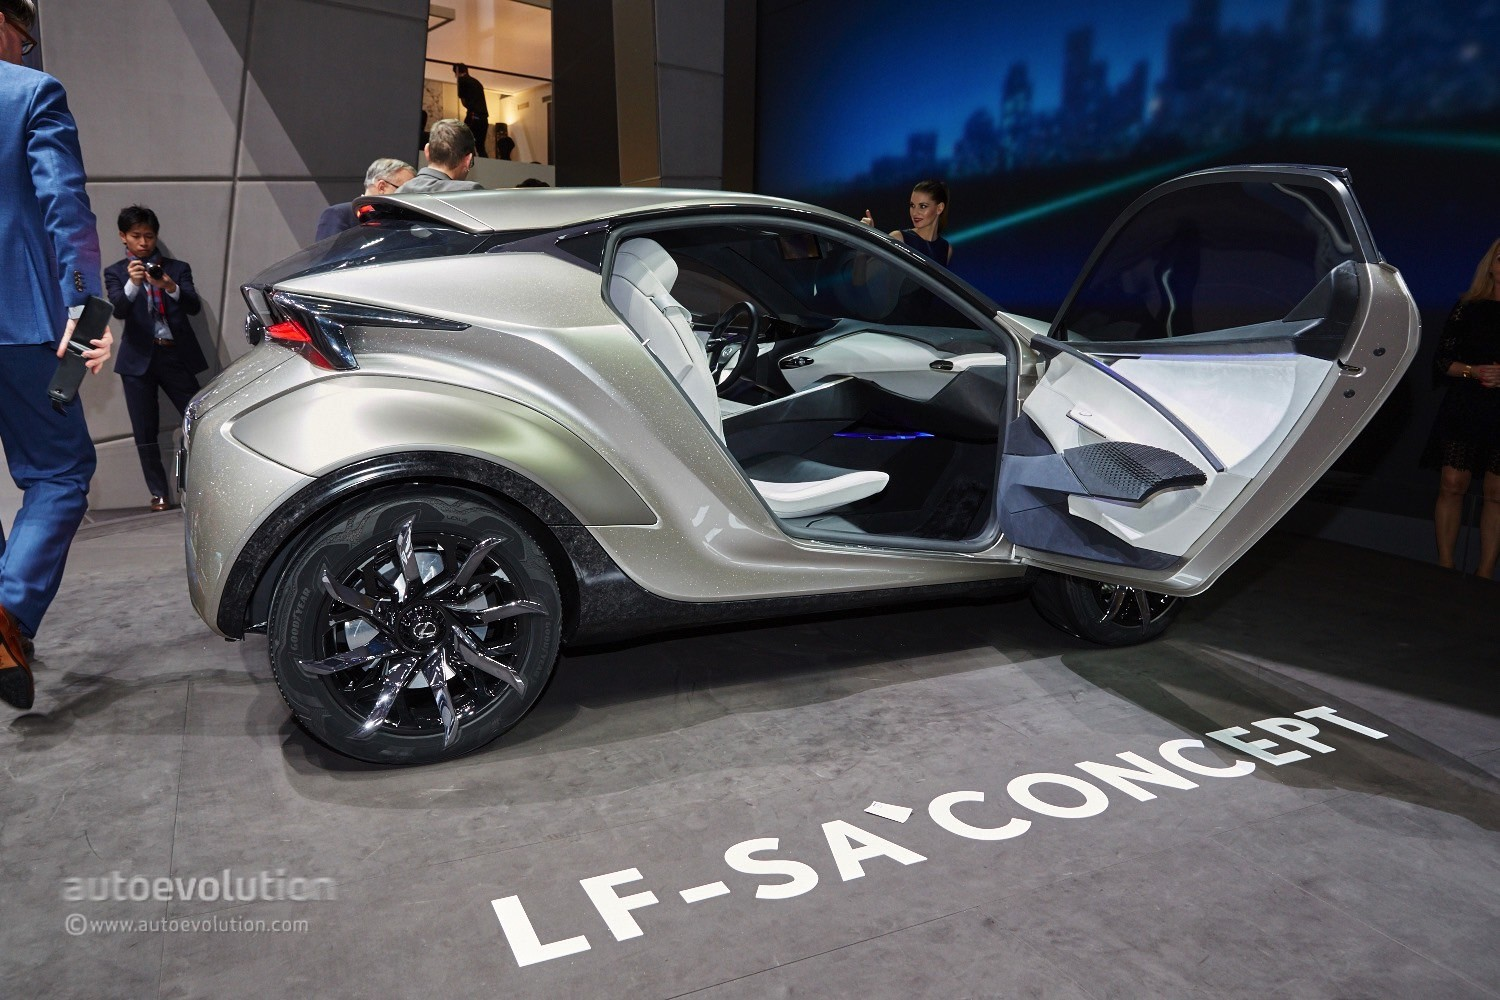 https://s1.cdn.autoevolution.com/images/news/gallery/lexus-lf-sa-concept-looks-ready-to-eat-minis-and-audi-a1s-in-geneva-live-photos_6.jpg